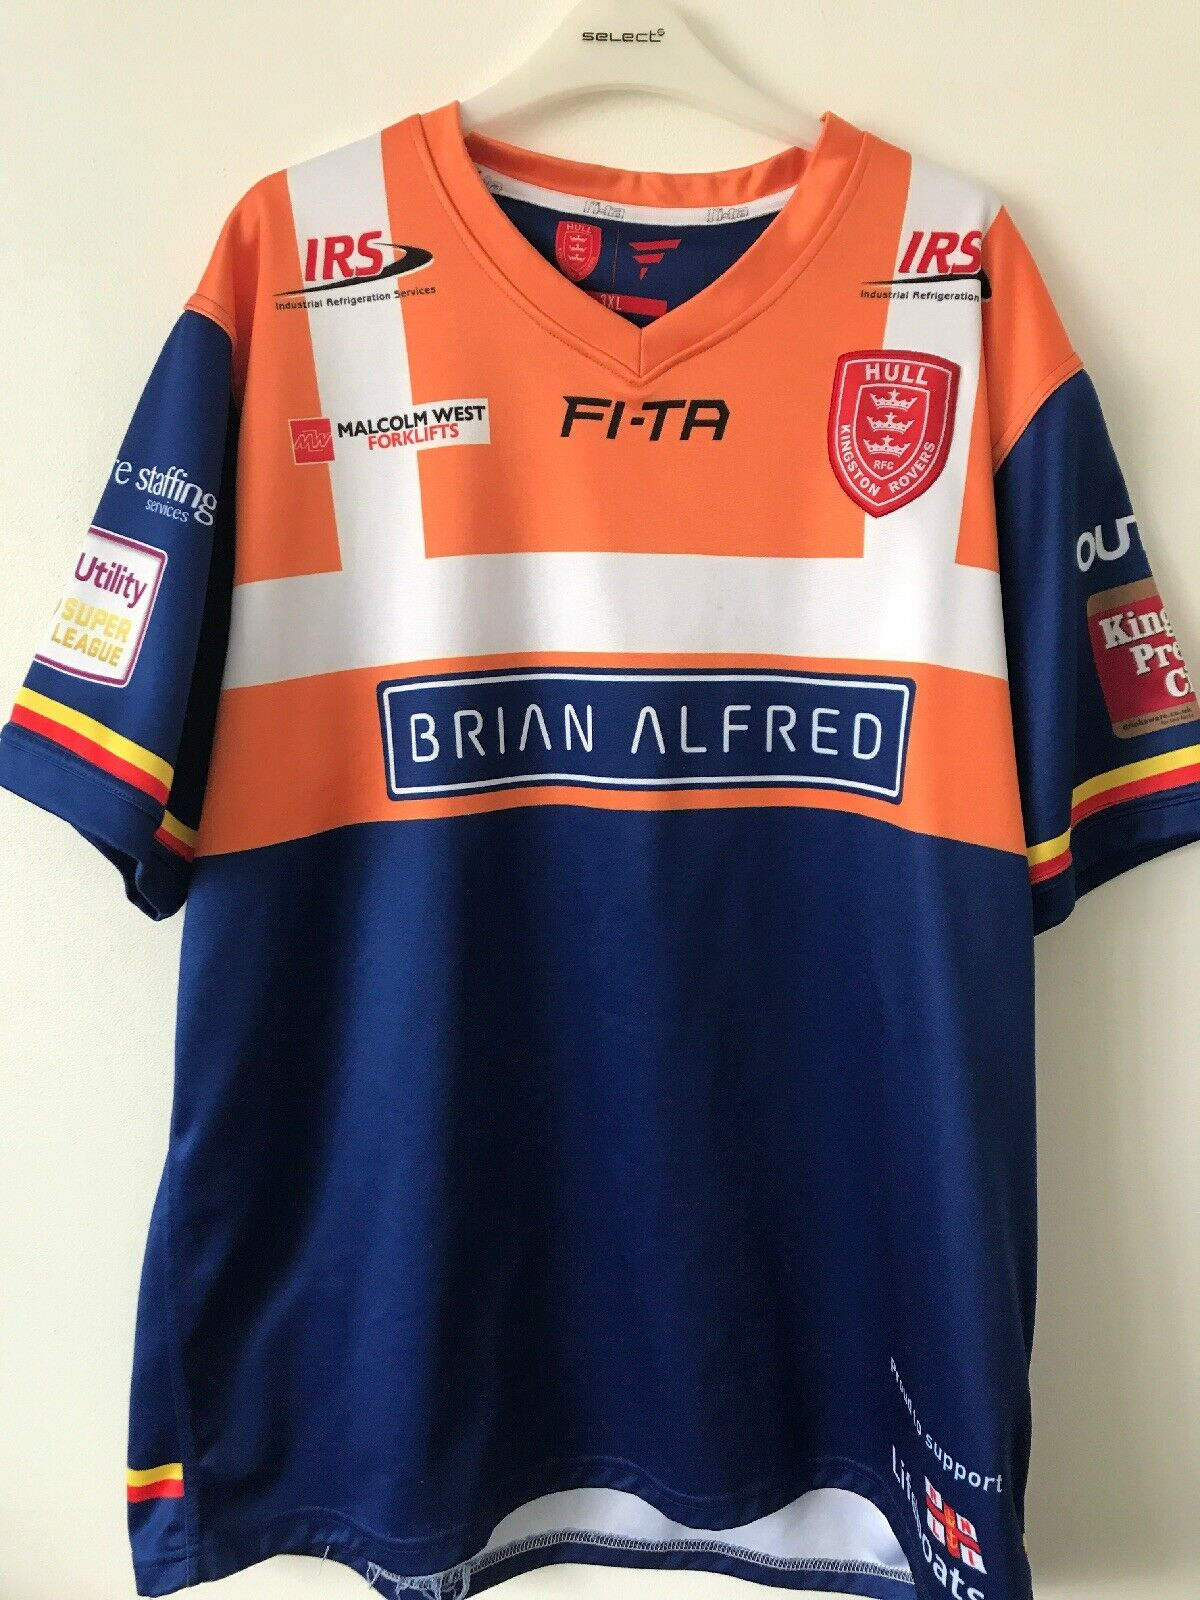 Hull Kingston Rovers Shirt 2016 Charity Shirt RNLISize 3 XL Excellent Condition